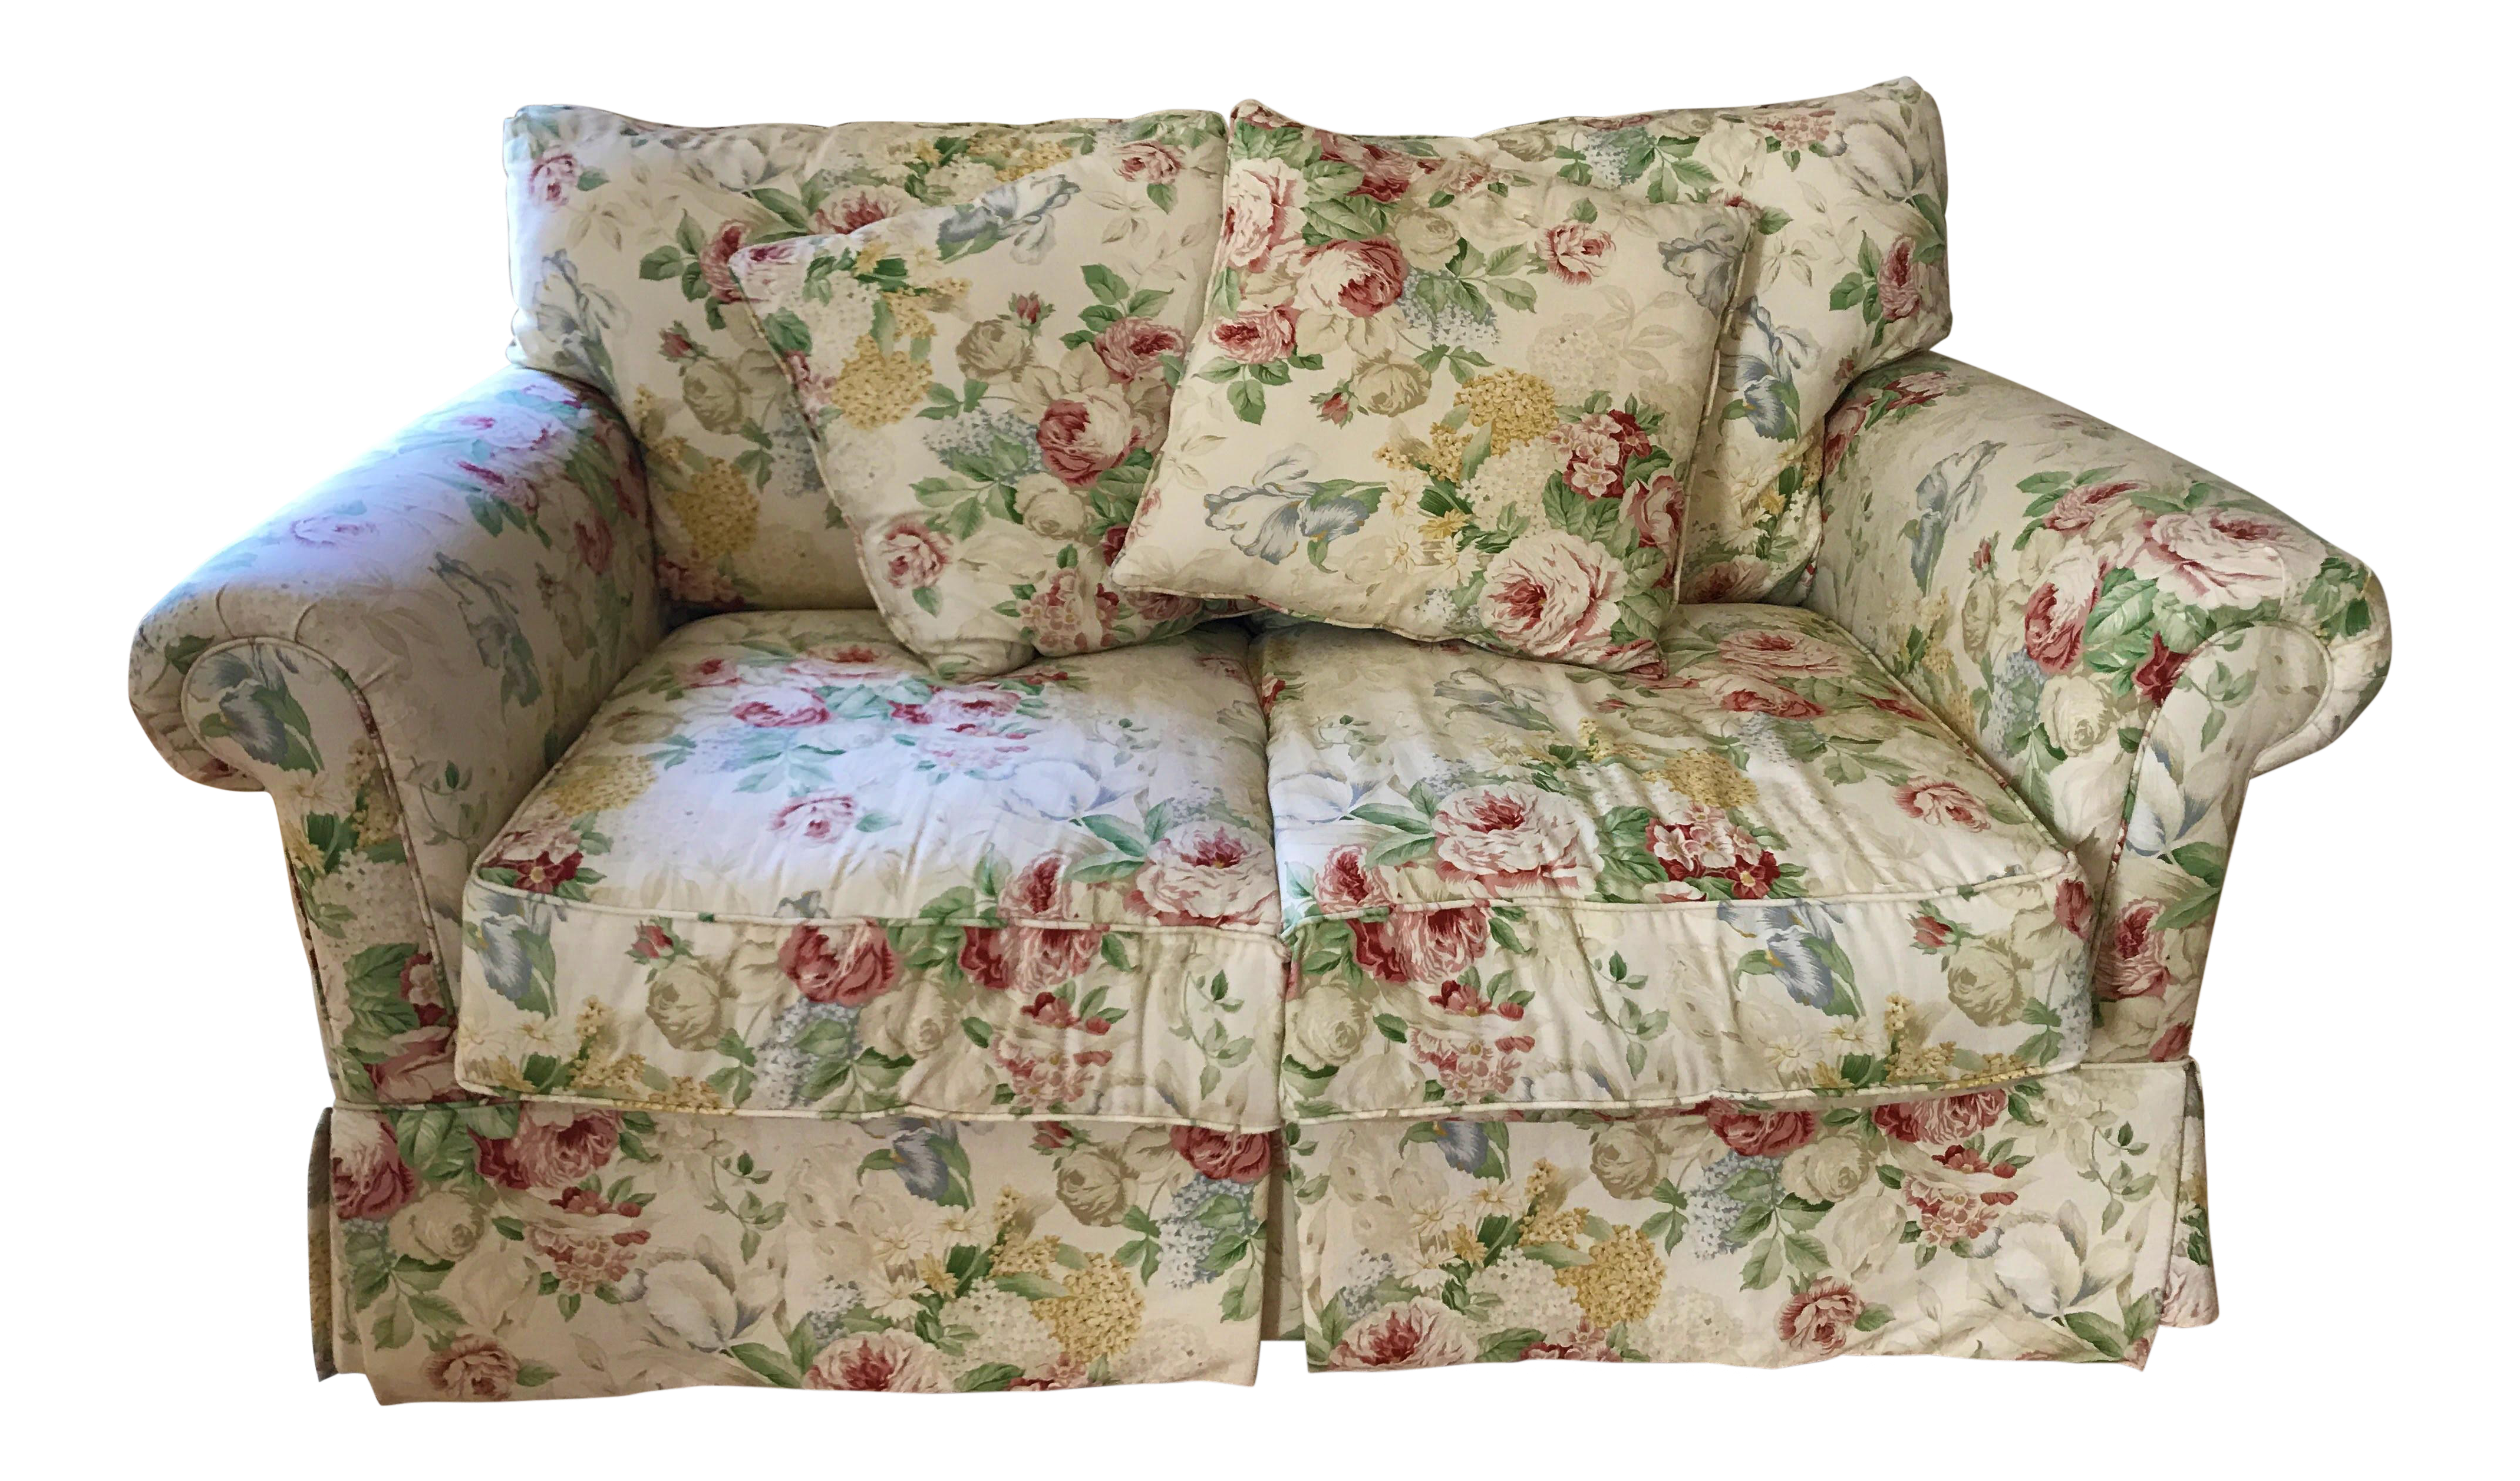 loveseat wool by and custom slipcovers loveseats shelley img couch sofas menswear floral